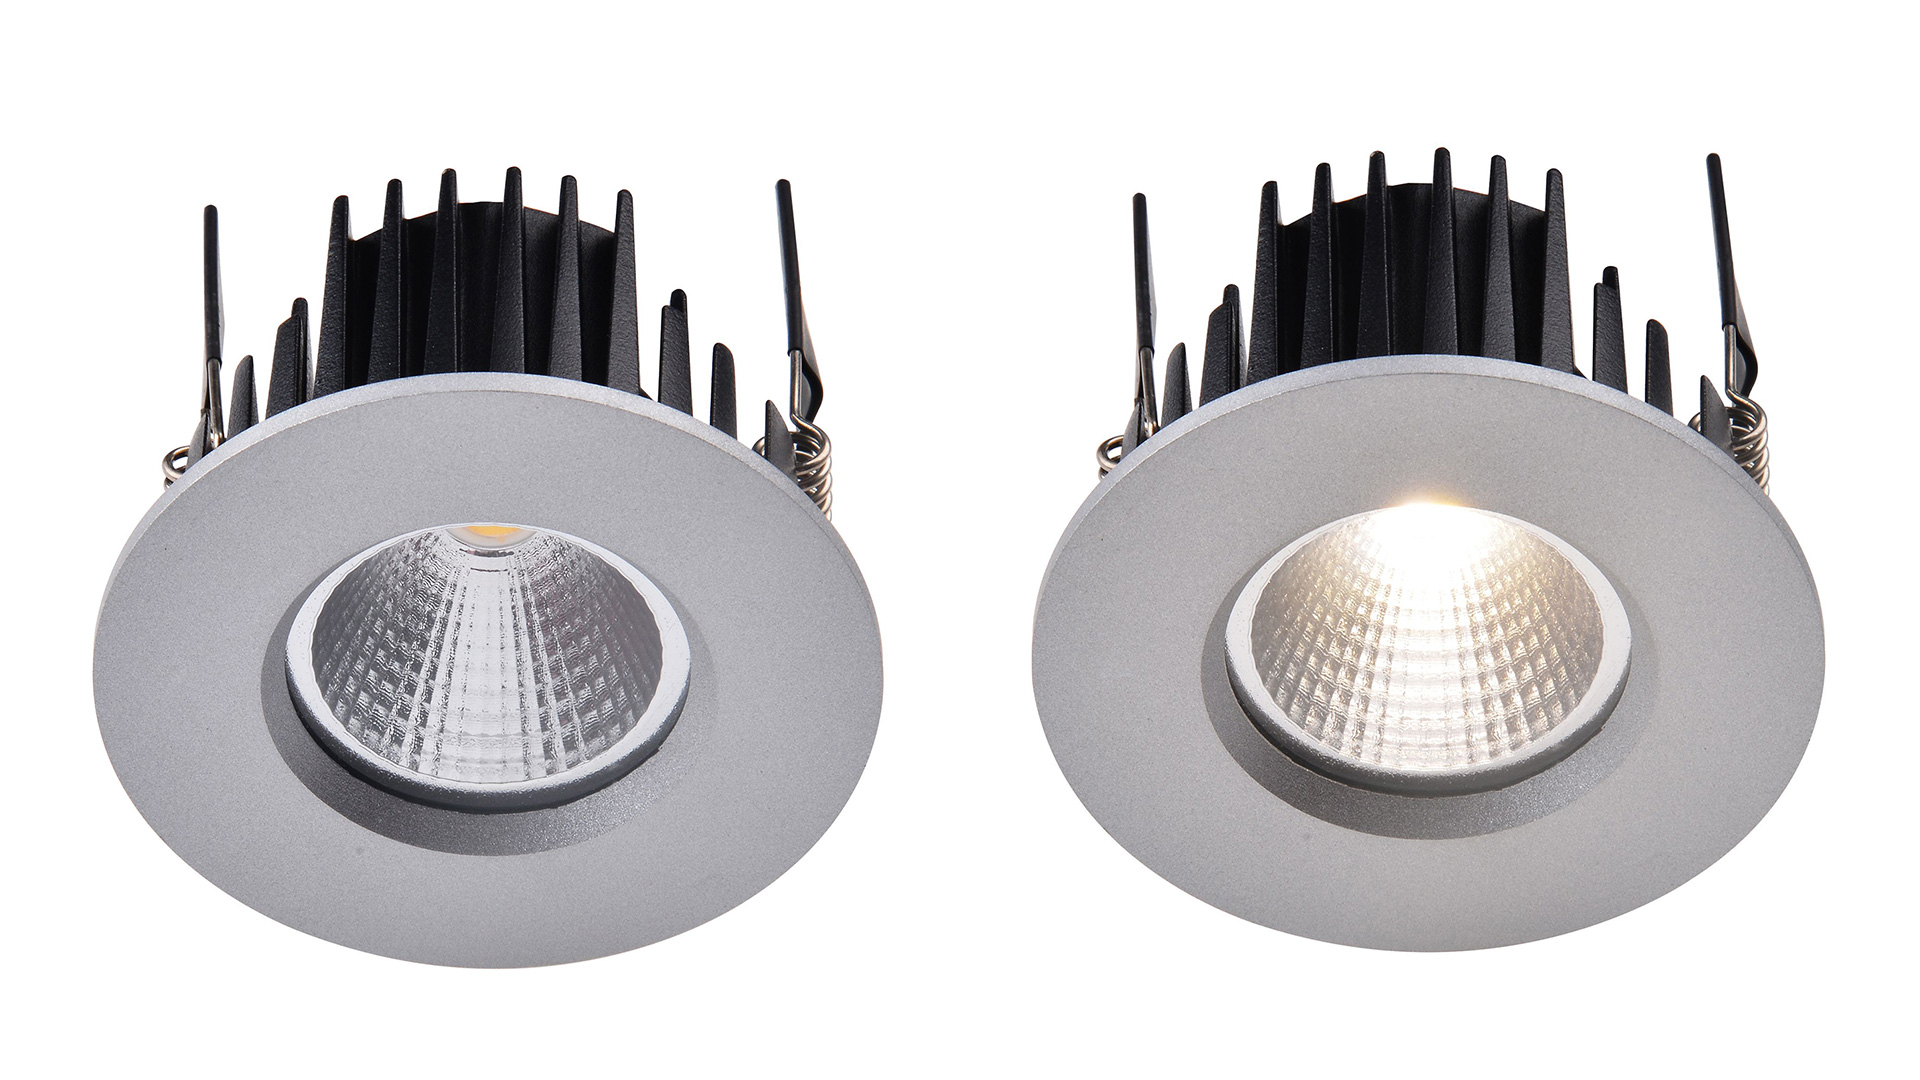 Downlight LED IP65 impermeable de 8 vatios